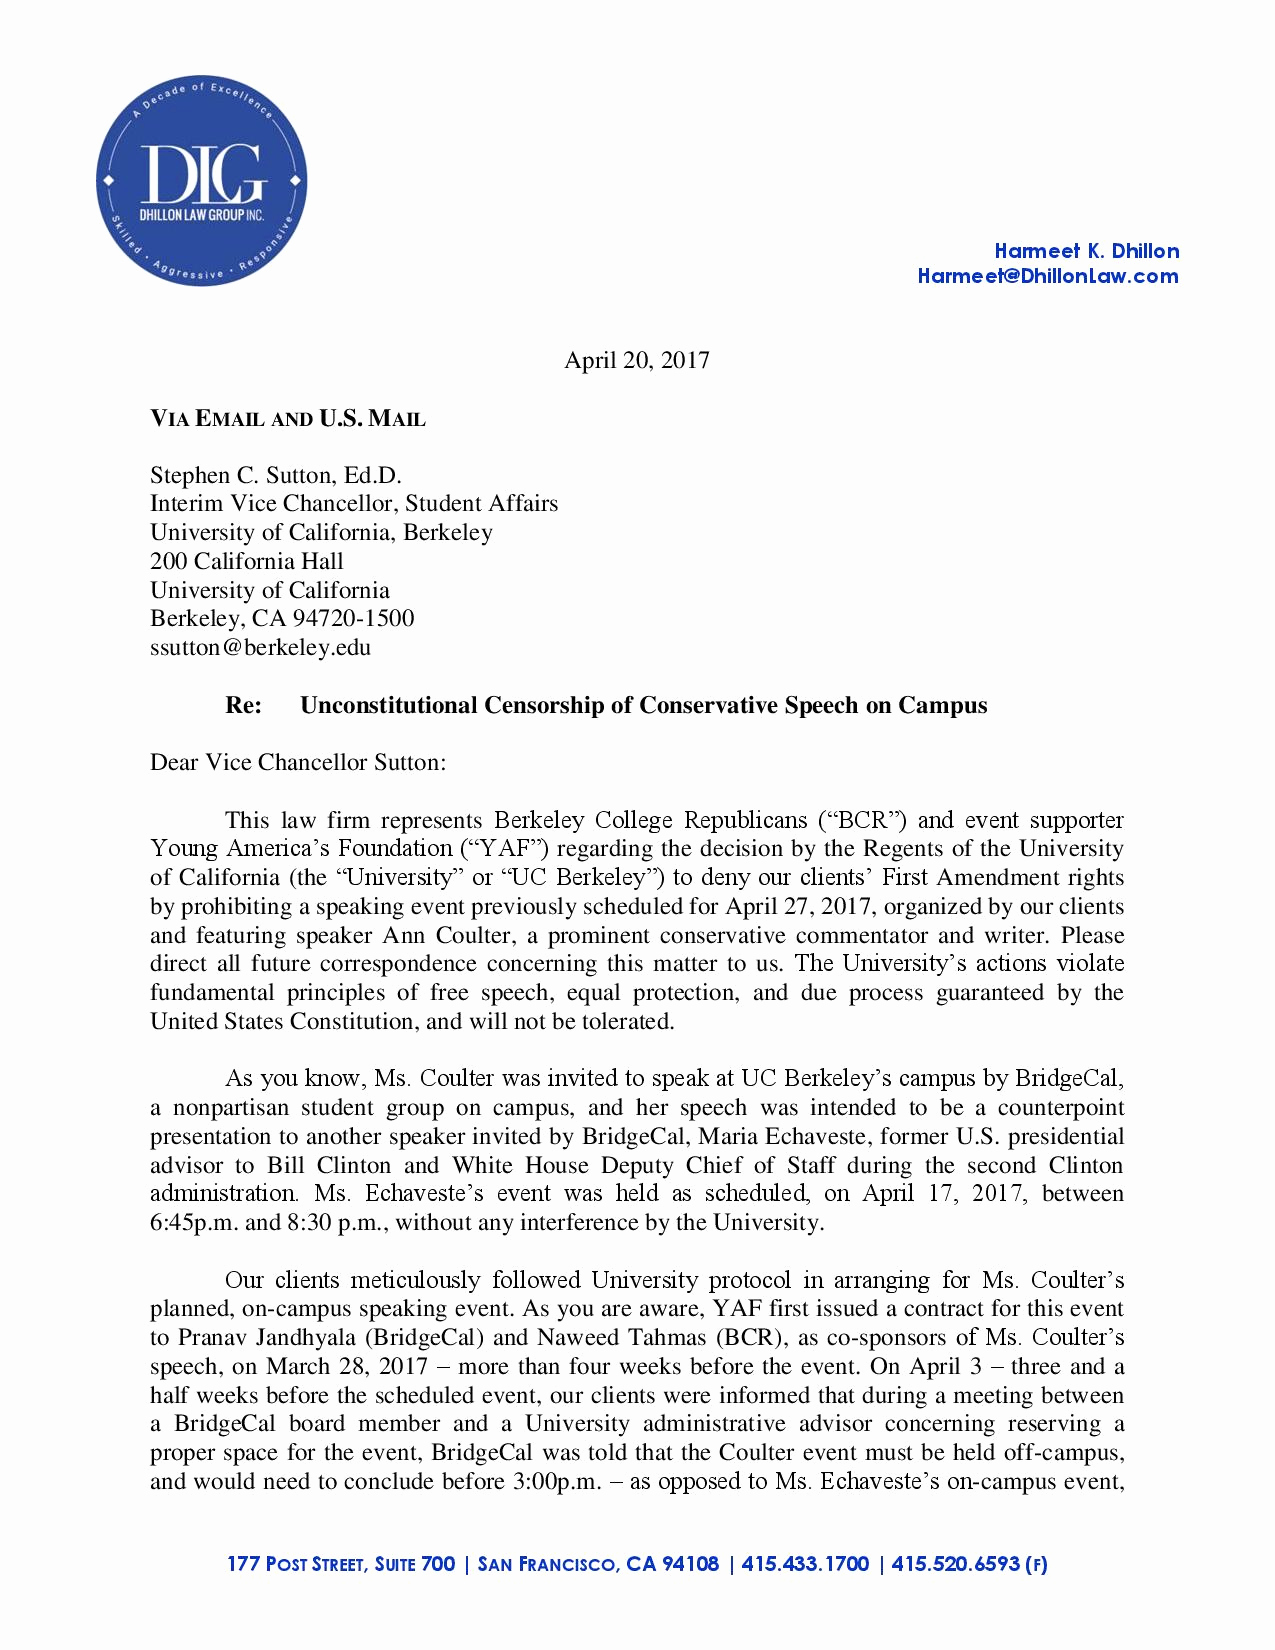 Uc Berkeley Recommendation Letter Best Of Uc Berkeley Reverses Position